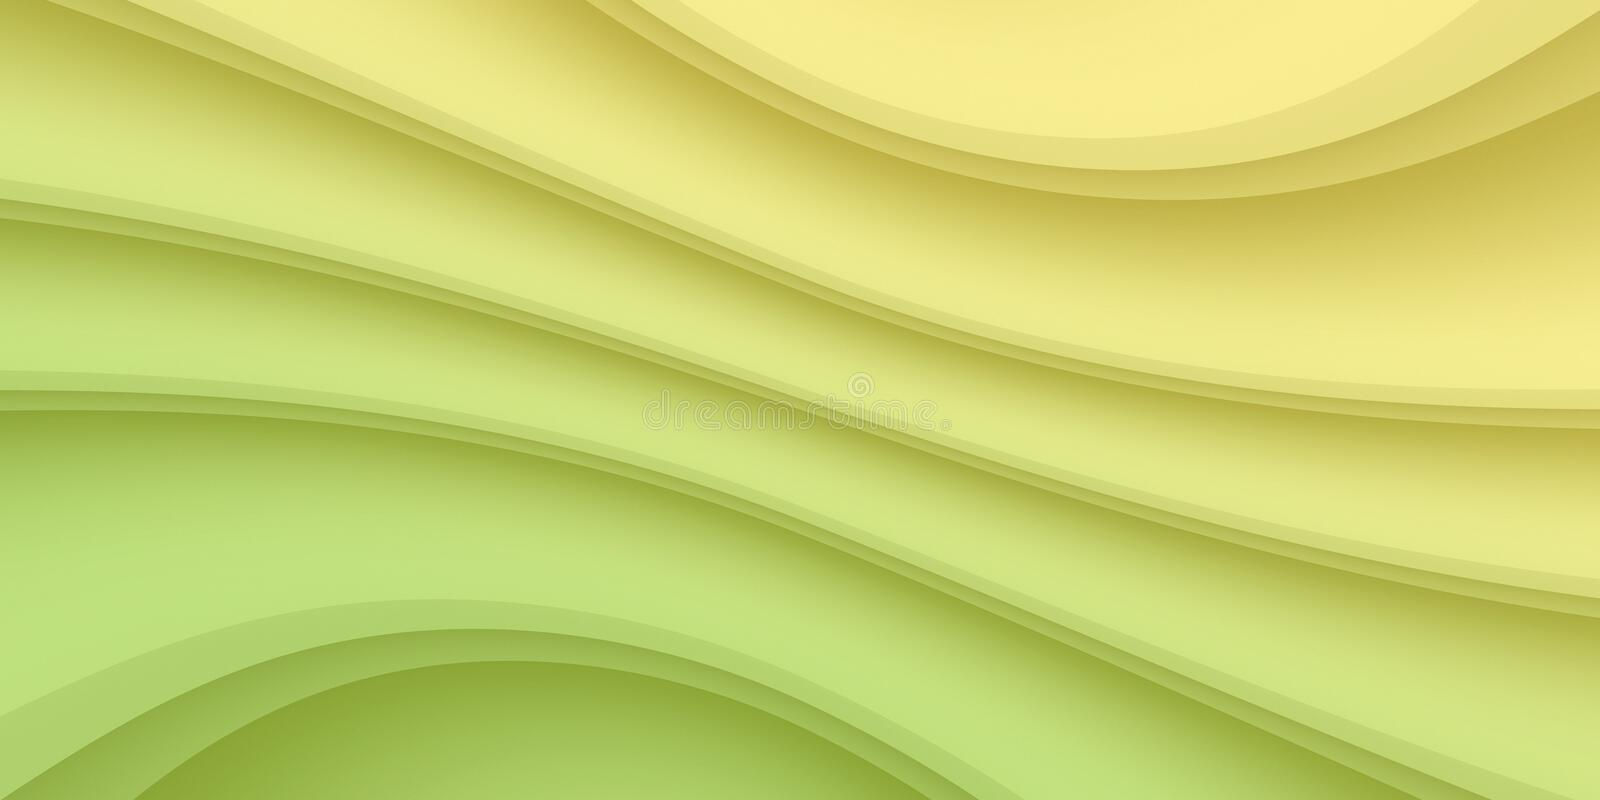 Pale yellow and green smooth flowing diagonal curves and lines vector abstract background illustration stock illustration